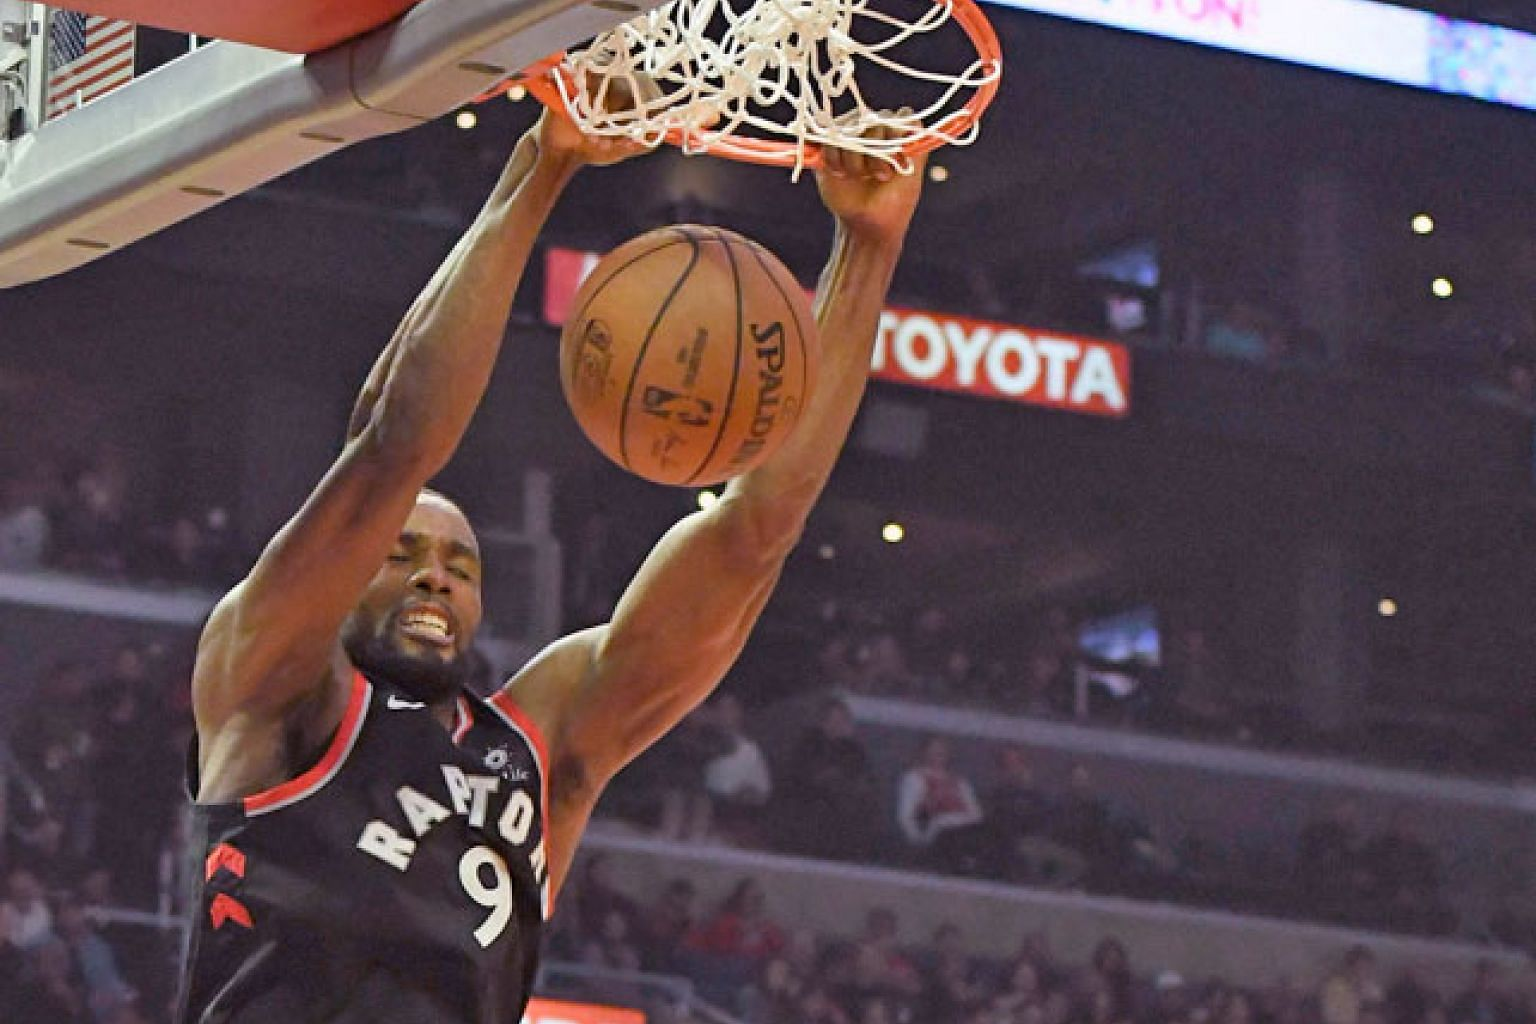 Toronto Raptors forward Serge Ibaka dunking the ball in the second half, as LA Clippers guard Milos Teodosic watched at Staples Centre on Tuesday. The Raptors won 123-99, improving their league-leading record to 22-7.